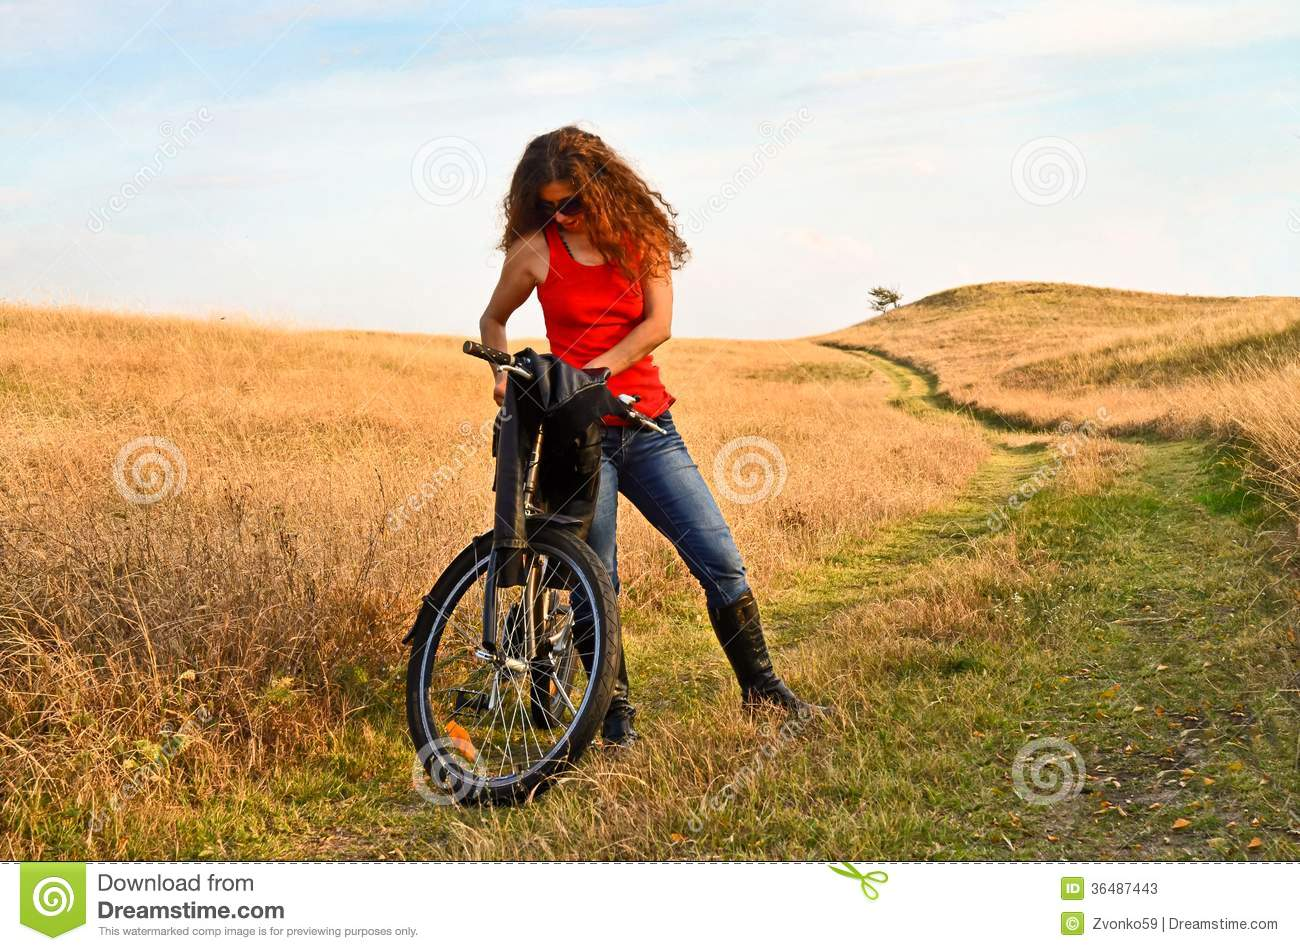 Bicycle Is Good for Body and the Environment